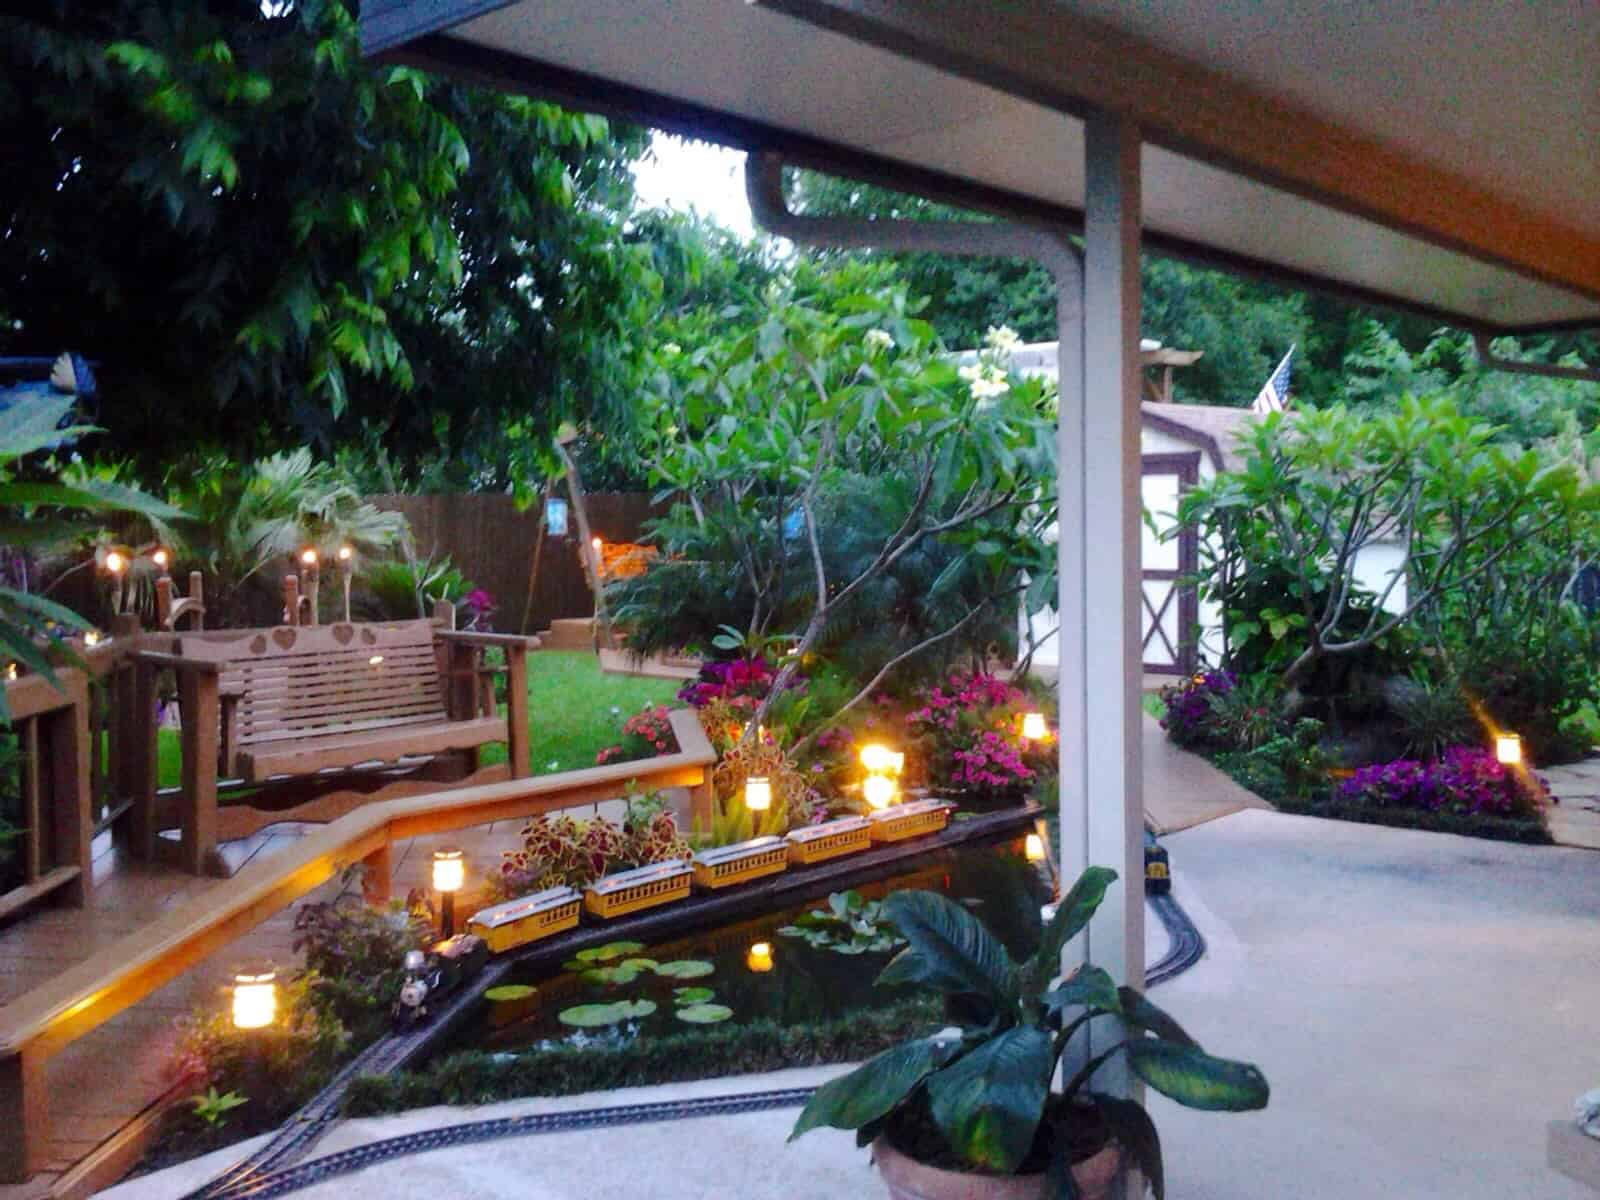 35 Sublime Koi Pond Designs and Water Garden Ideas for ... on Koi Ponds Ideas  id=46446